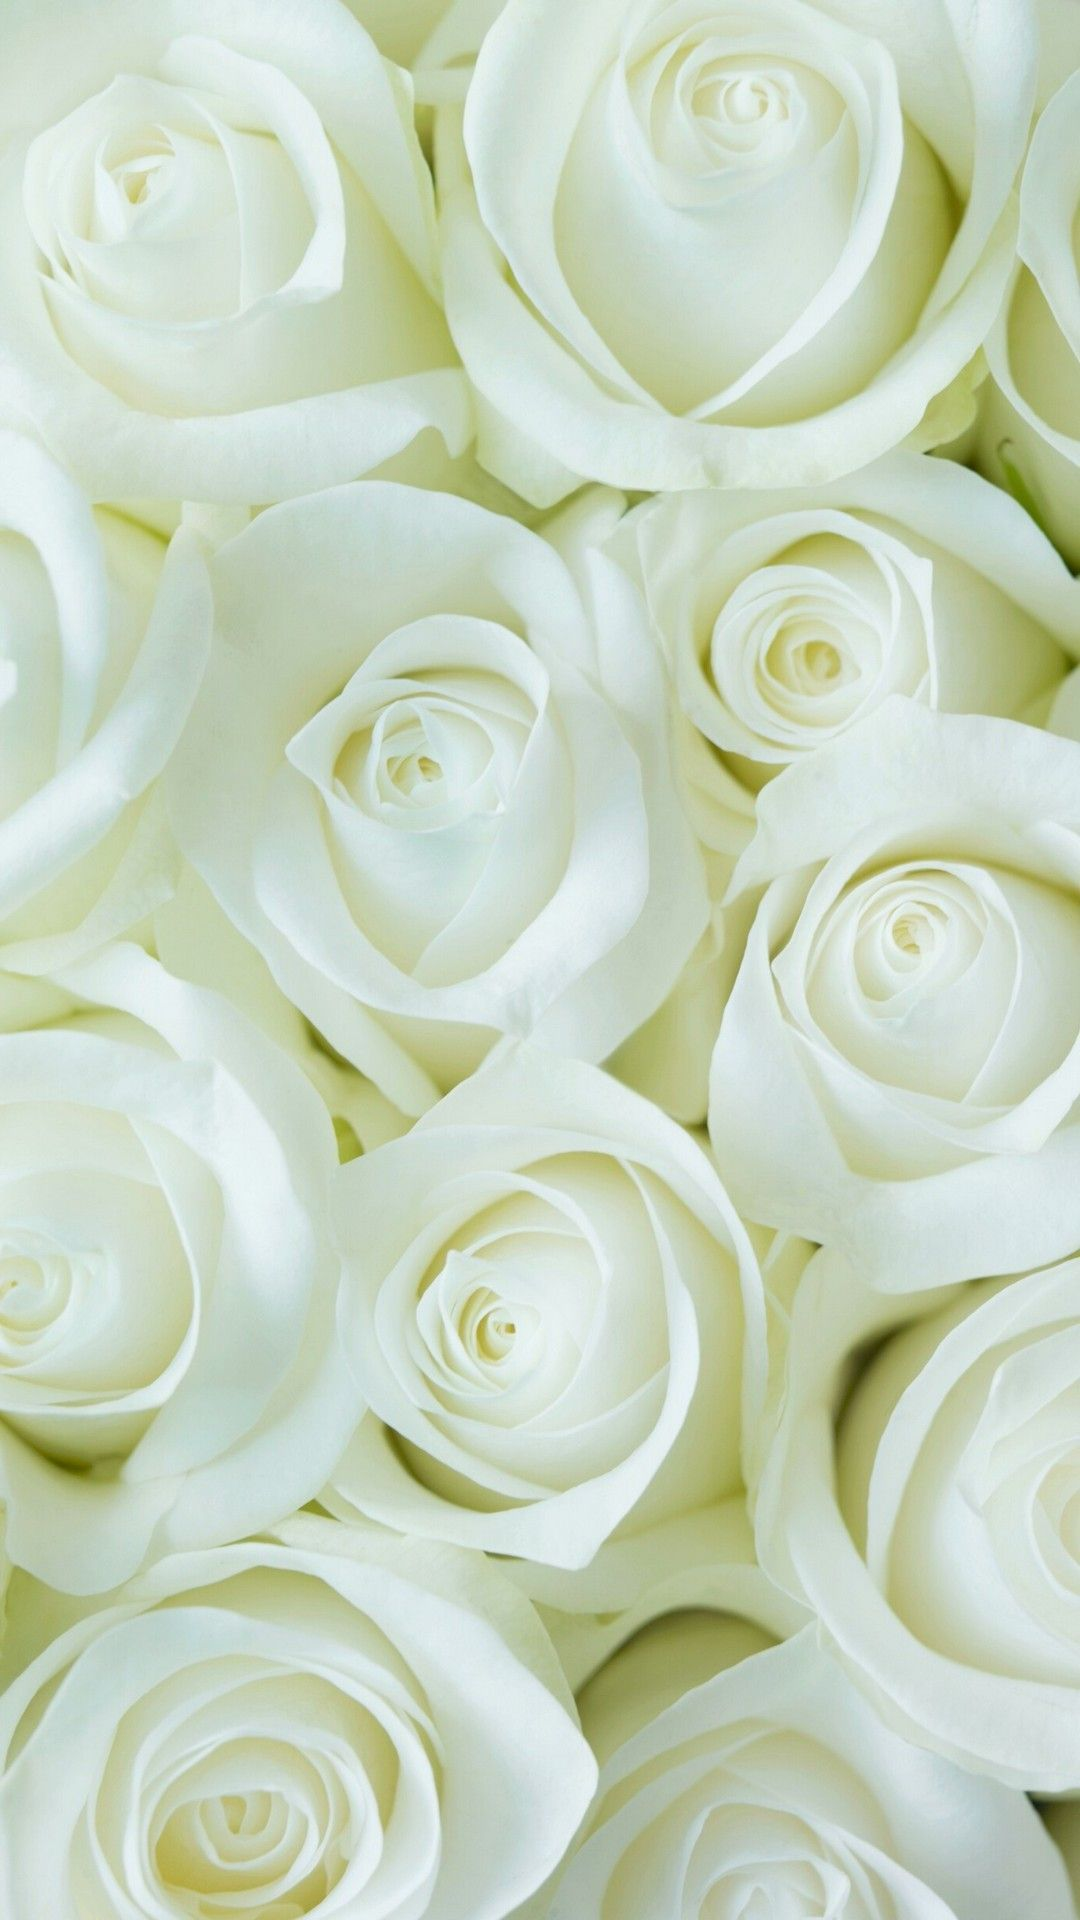 White Flower Hd Wallpapers Top Free White Flower Hd Backgrounds Wallpaperaccess